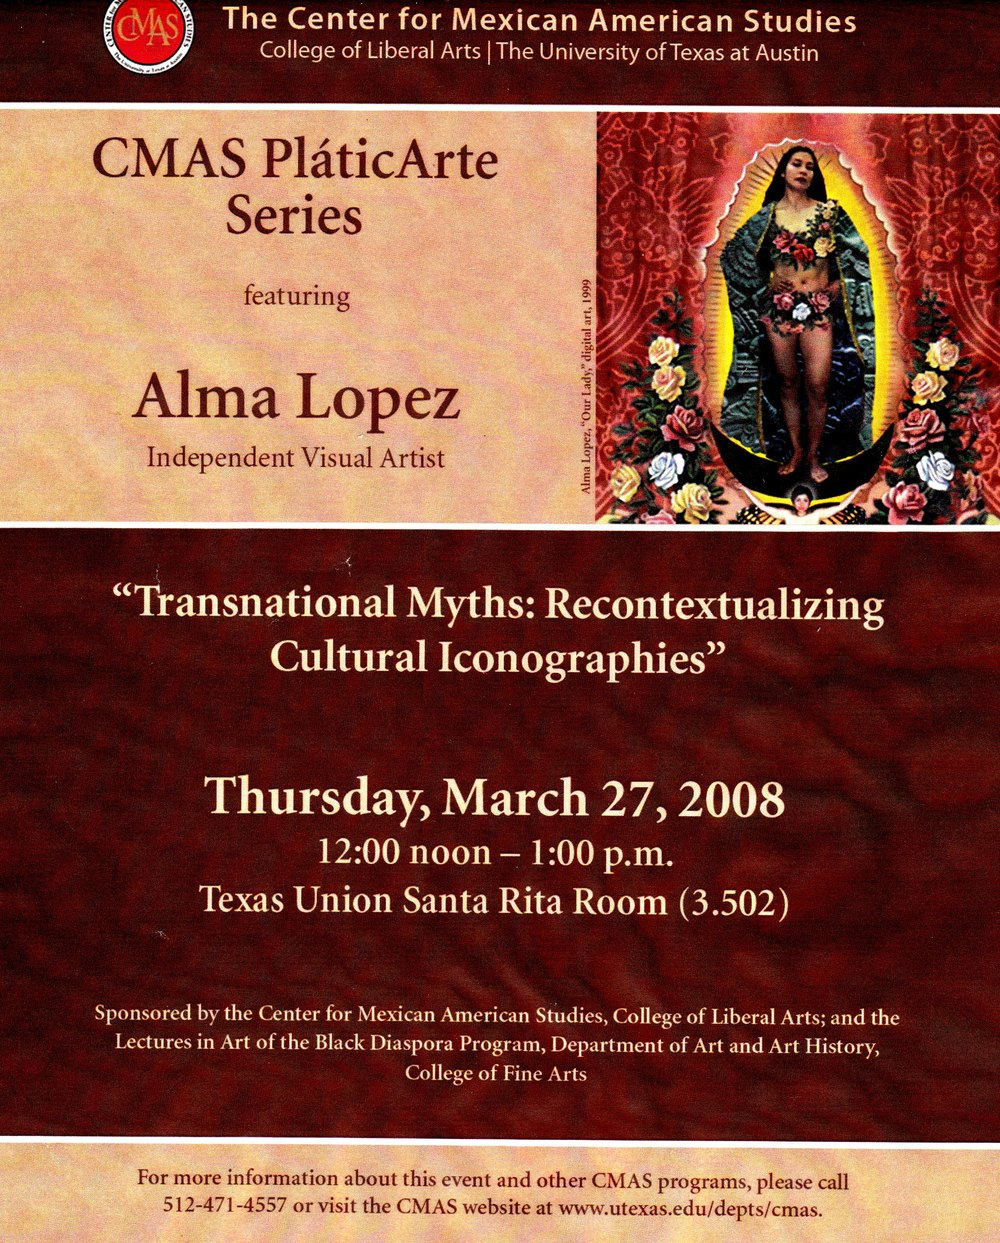 Flier for Transnational Myths: Recontextualizing Cultural Iconographies with Alma Lopez,The University of Texas at Austin,  2008.